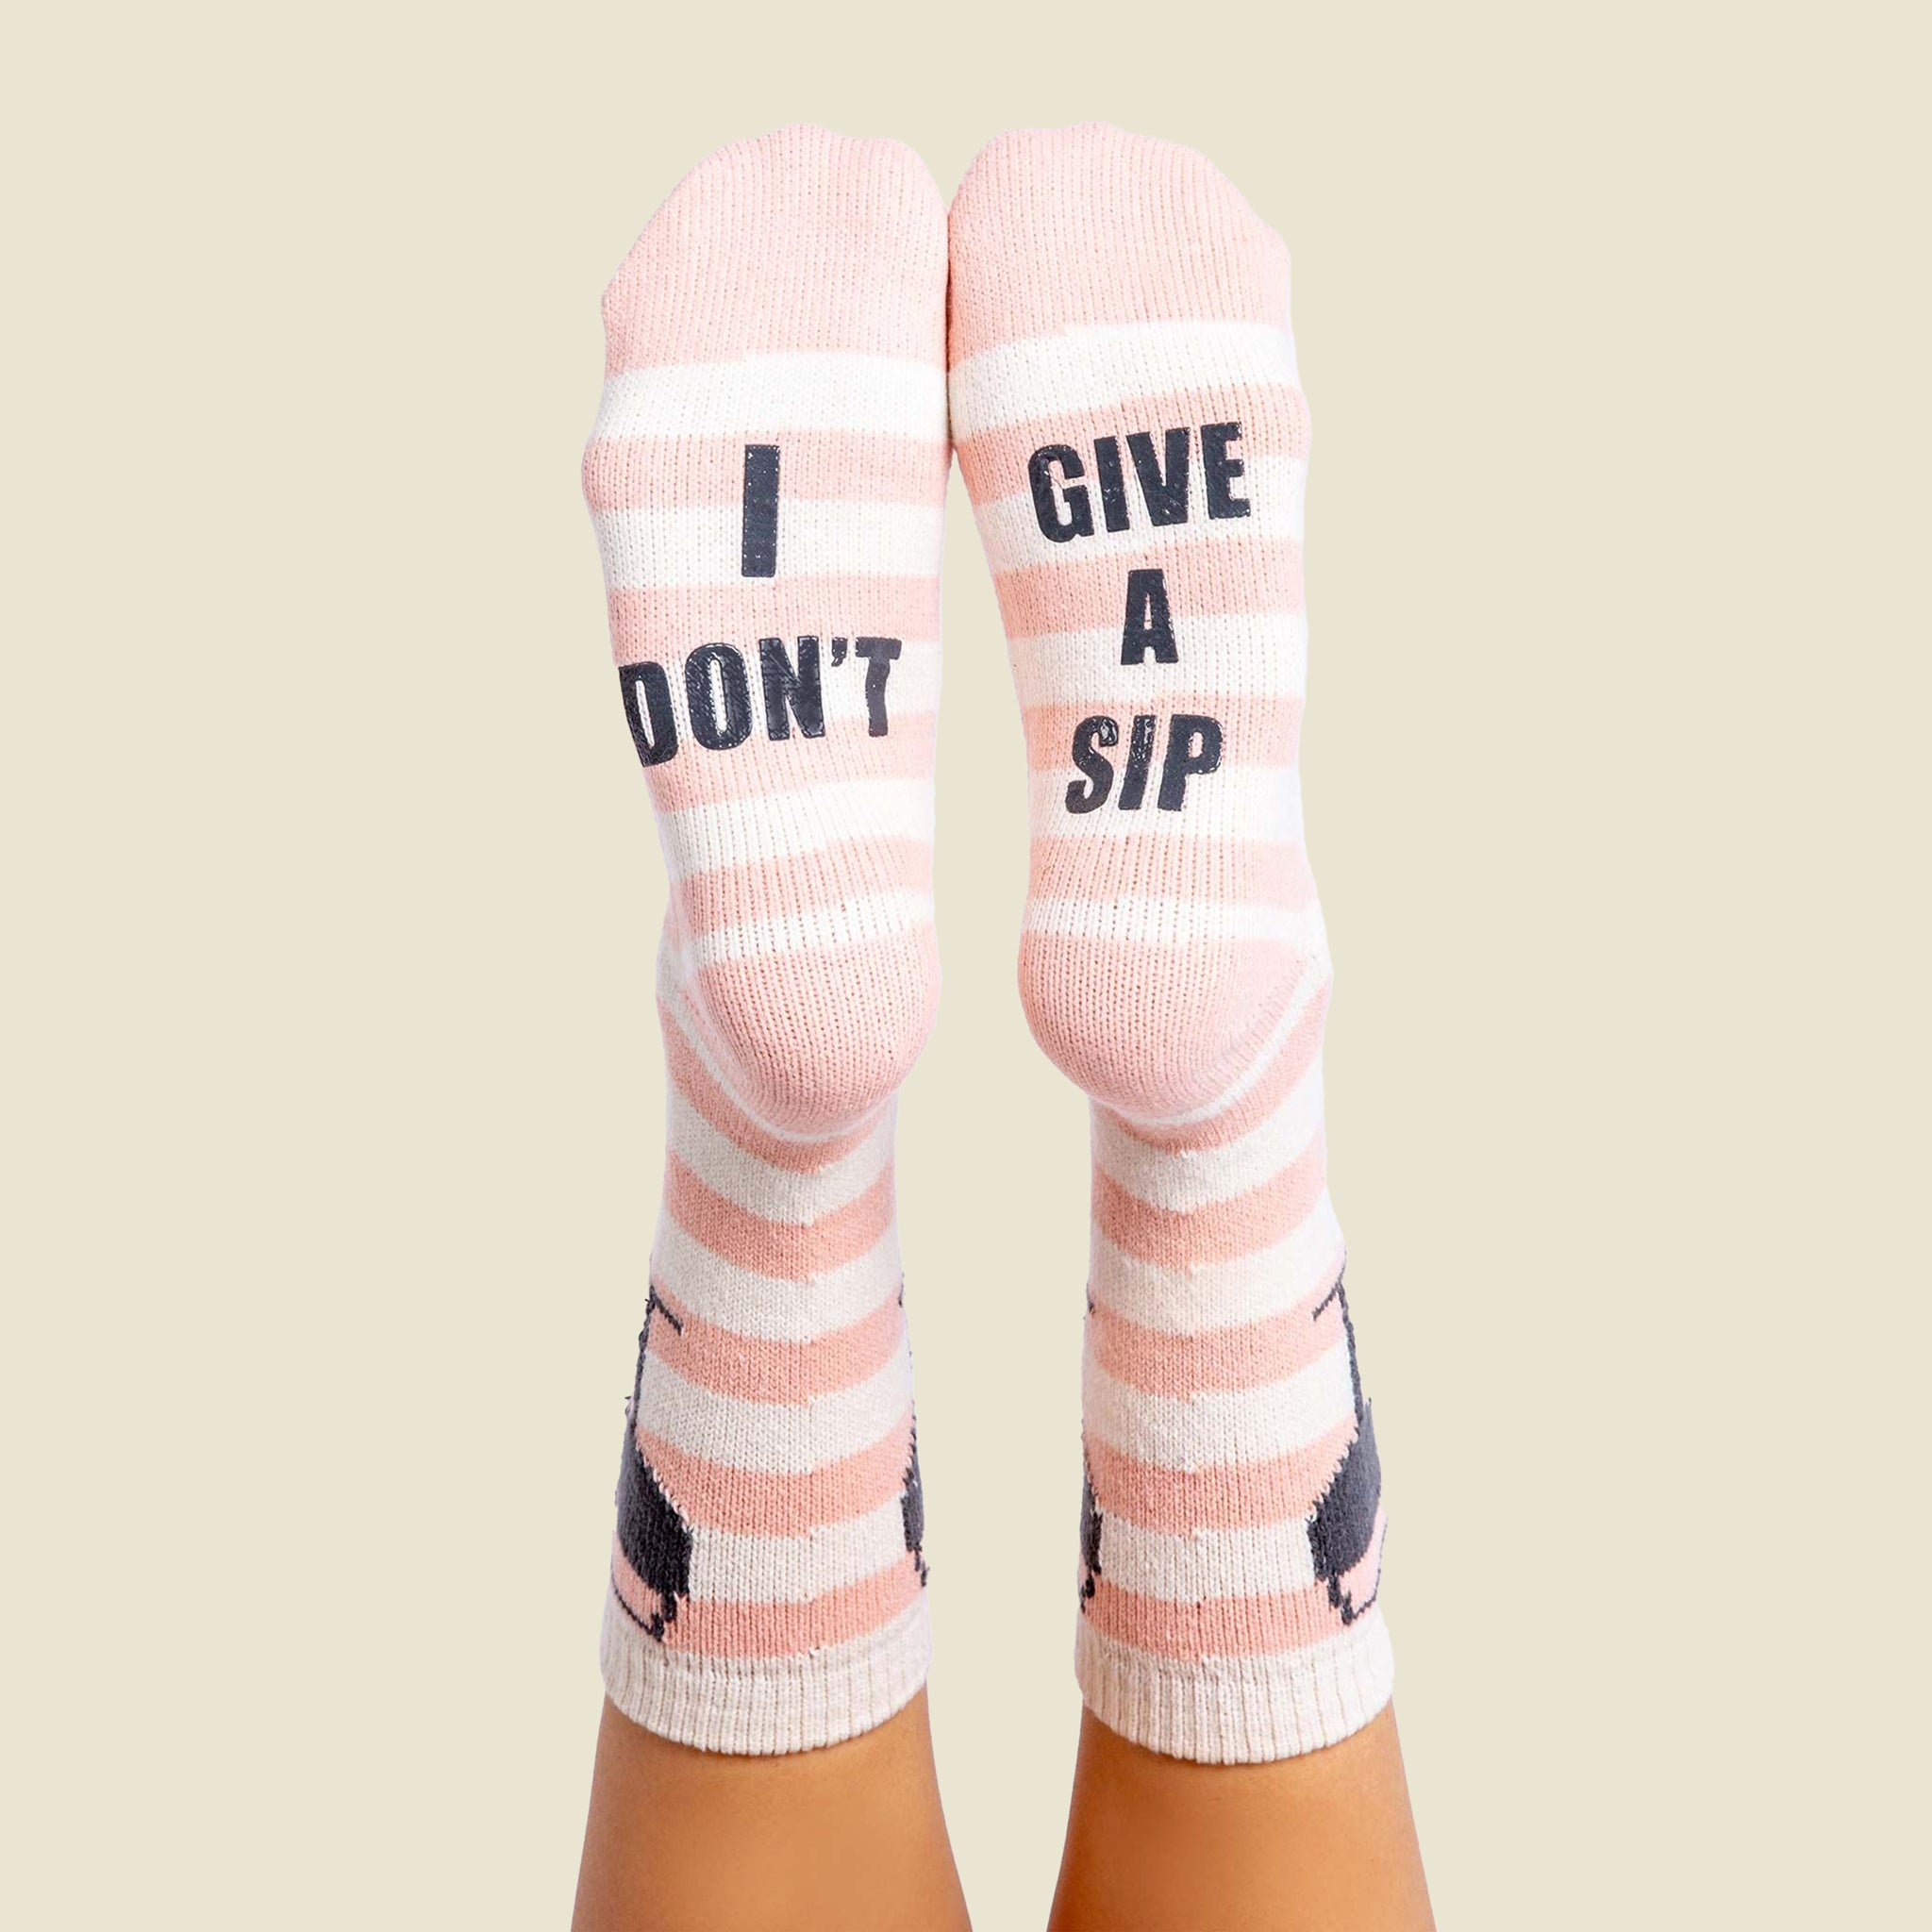 I Don't Give a Sip Socks - Blackbird General Store